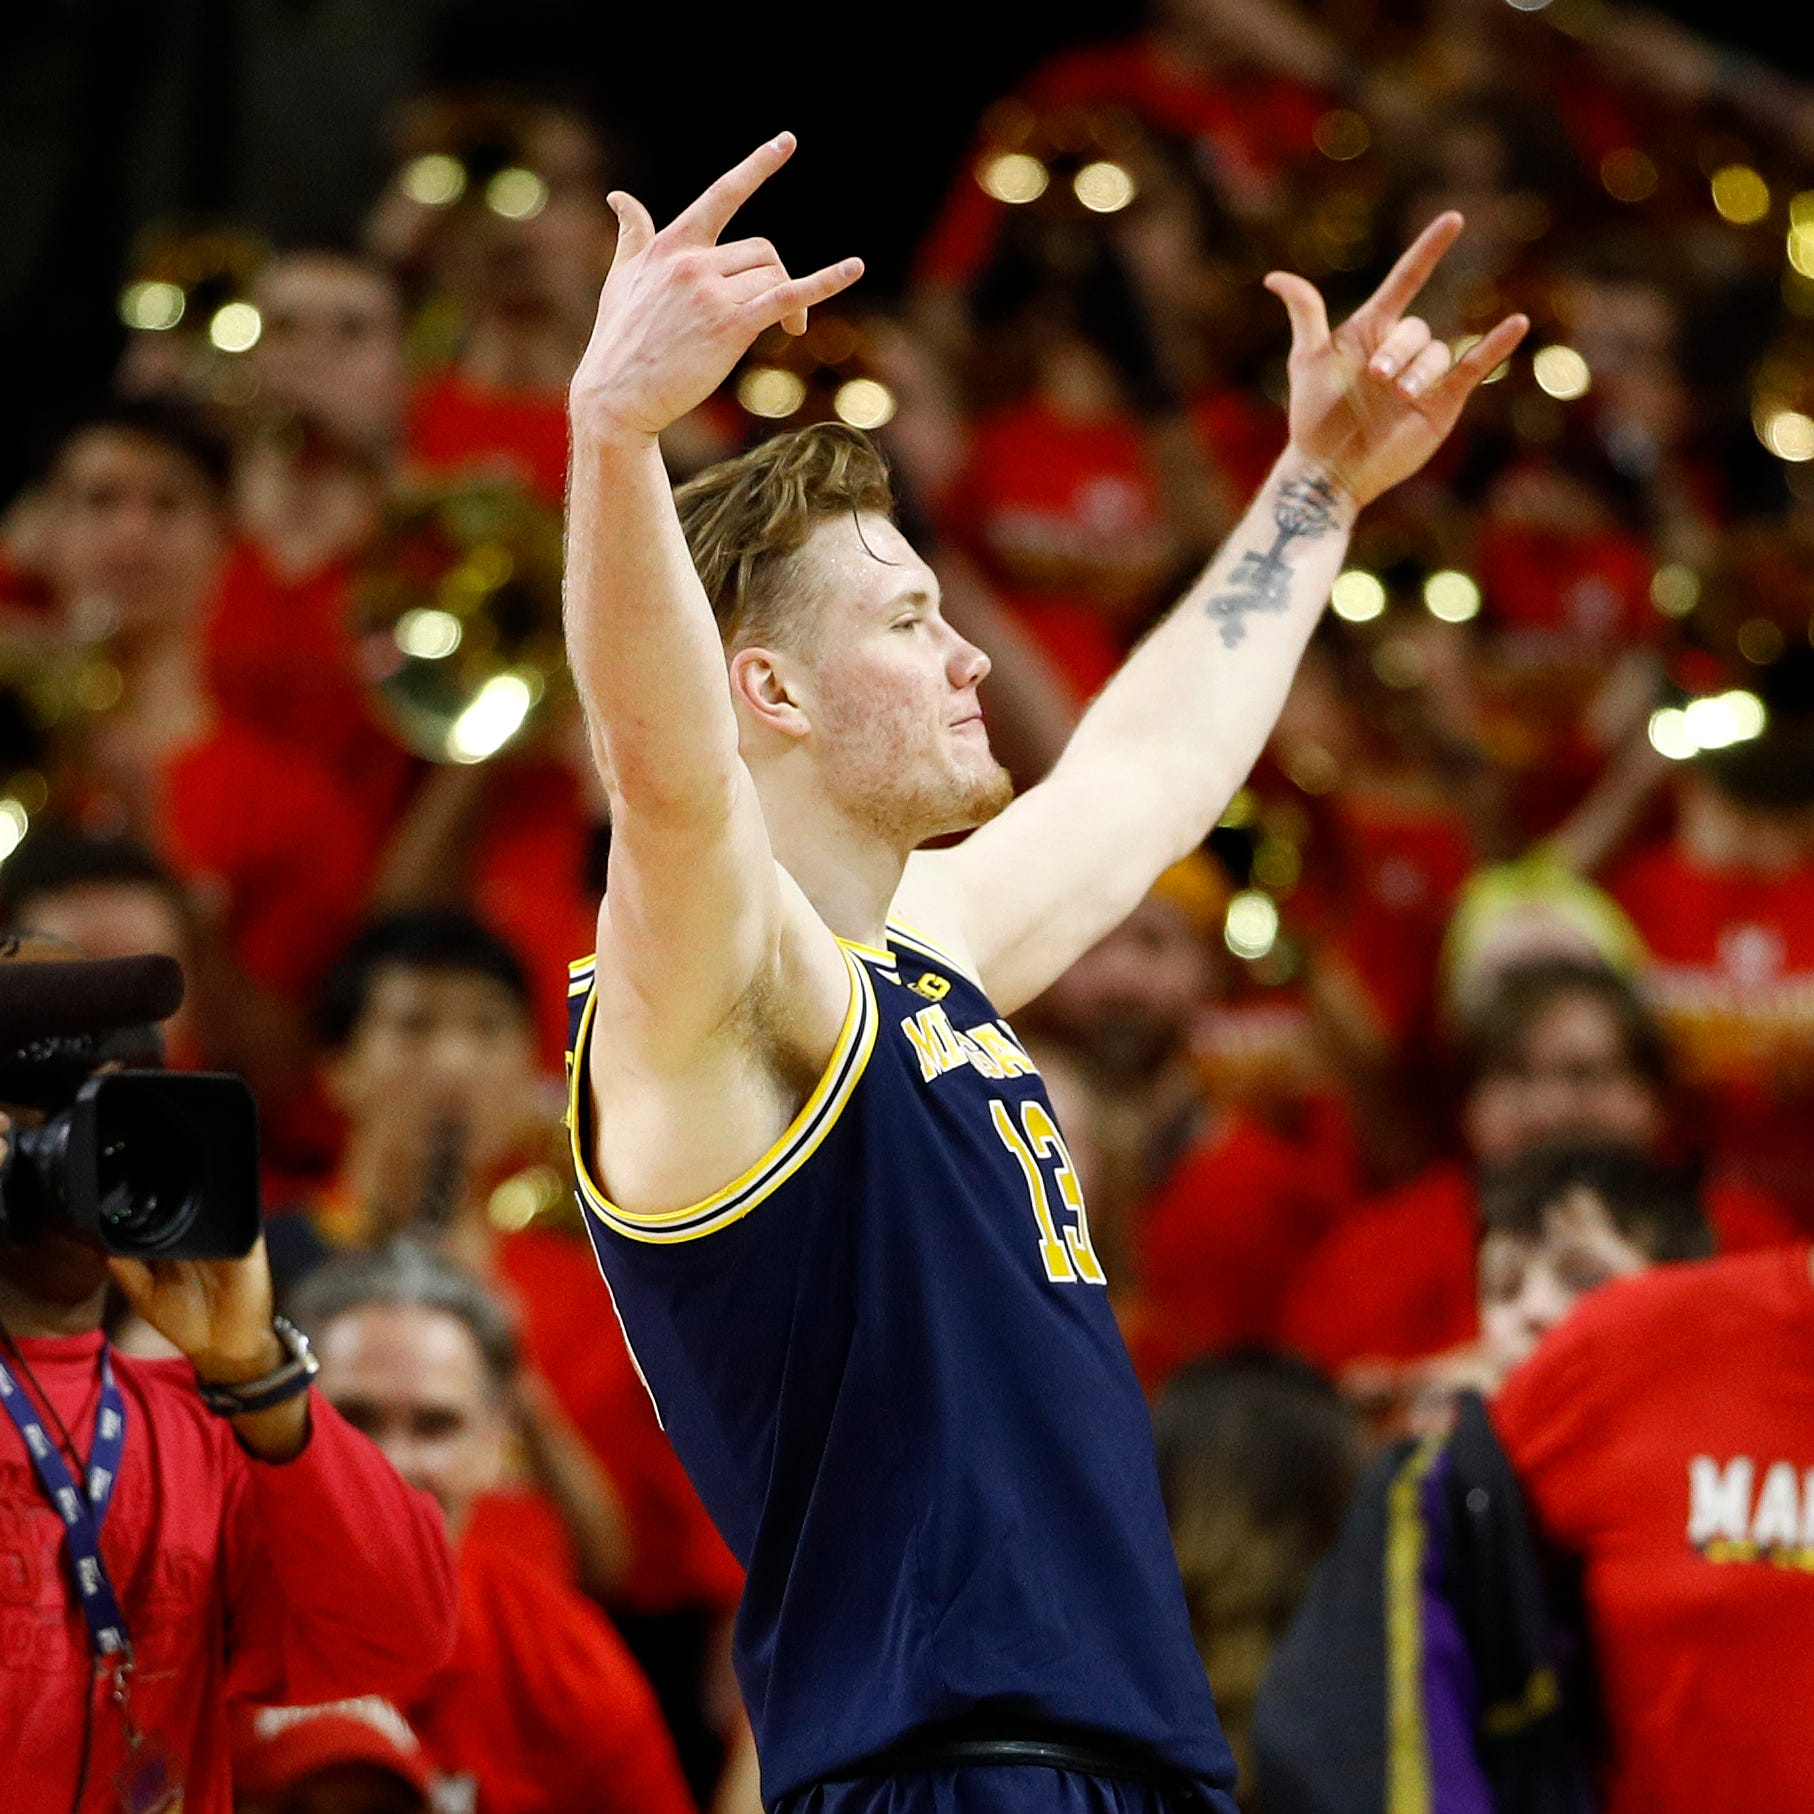 Maryland fans call Michigan's Ignas Brazdeikis ugly and he blows them a kiss